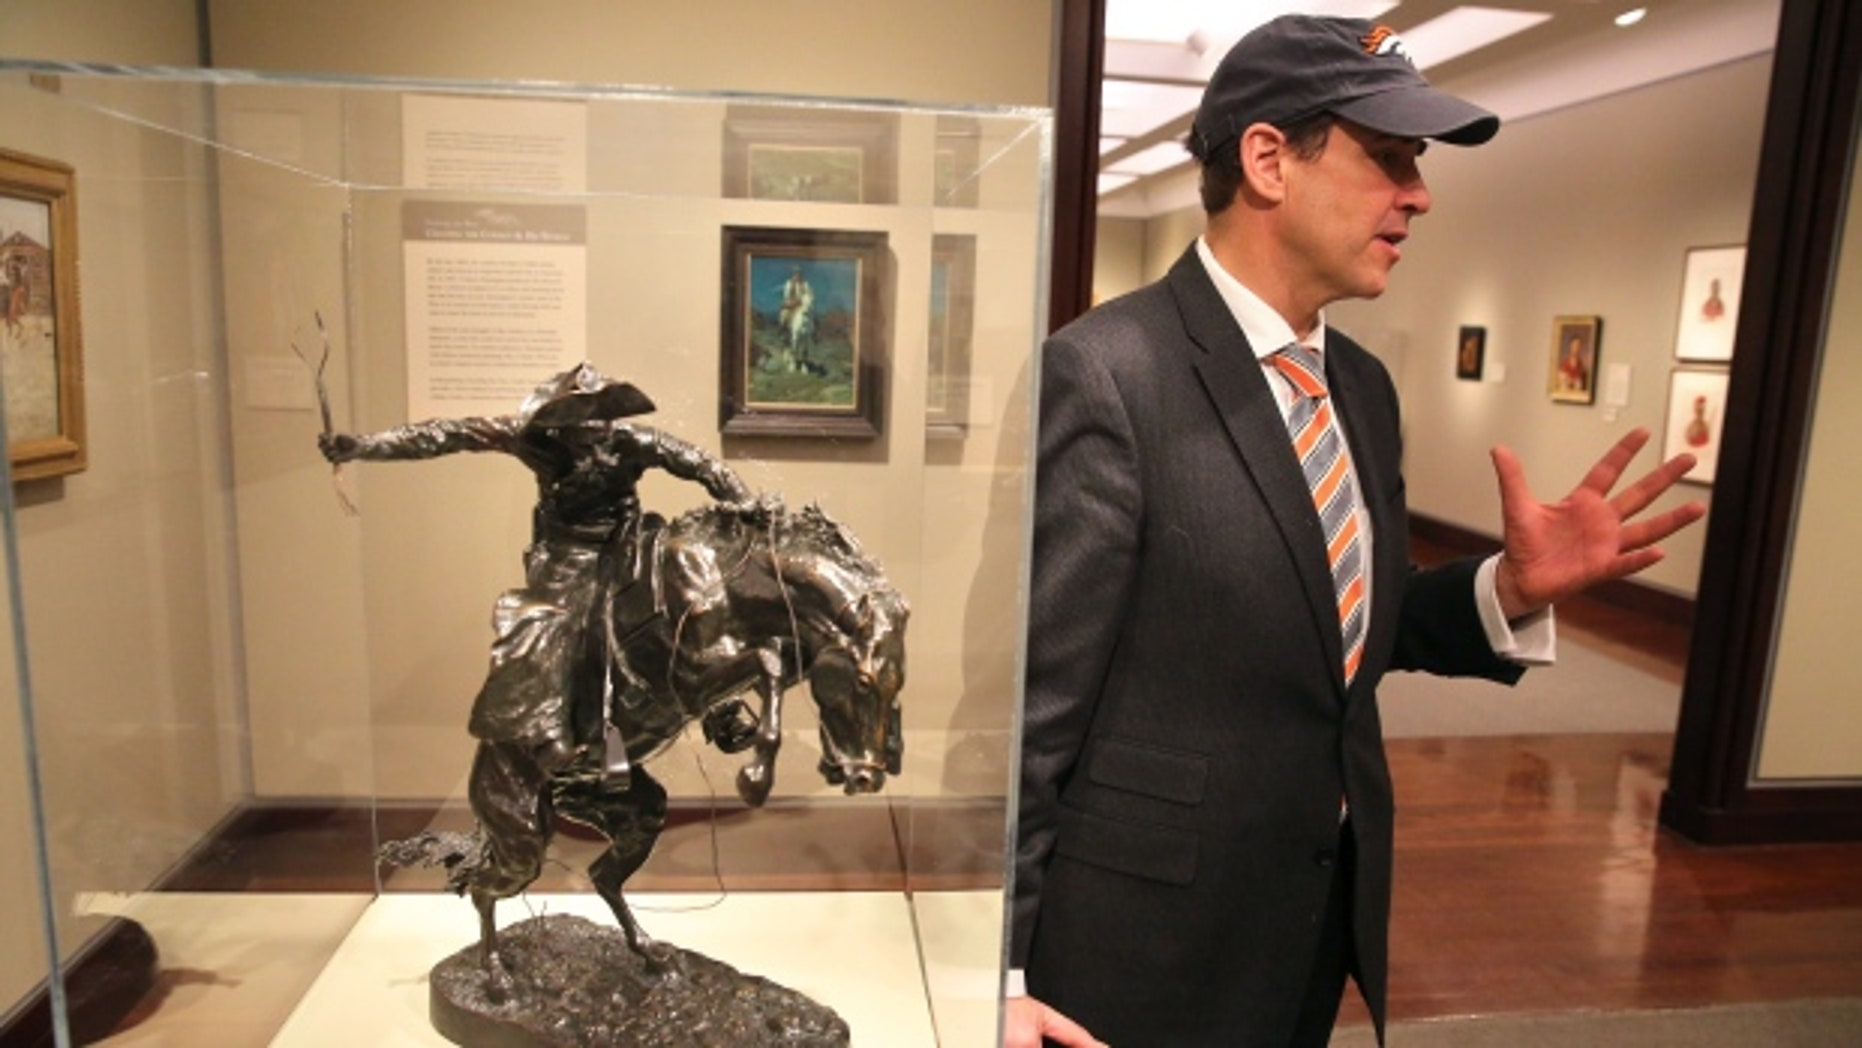 January 29, 2014: Denver Art Museum director Christoph Heinrich poses next to a Frederic Remington bronze of a cowboy riding a bucking horse, part of the museum's collection. The Denver and Seattle Art Museums have started a friendly wager: if the Broncos win the Super Bowl against the Seahawks, Seattle will send a Seahawk mask to Denver for three months. If the Seahawks win, Denver sends the Remington statue to Seattle for three months. (Brennan Linsley/Associated Press)